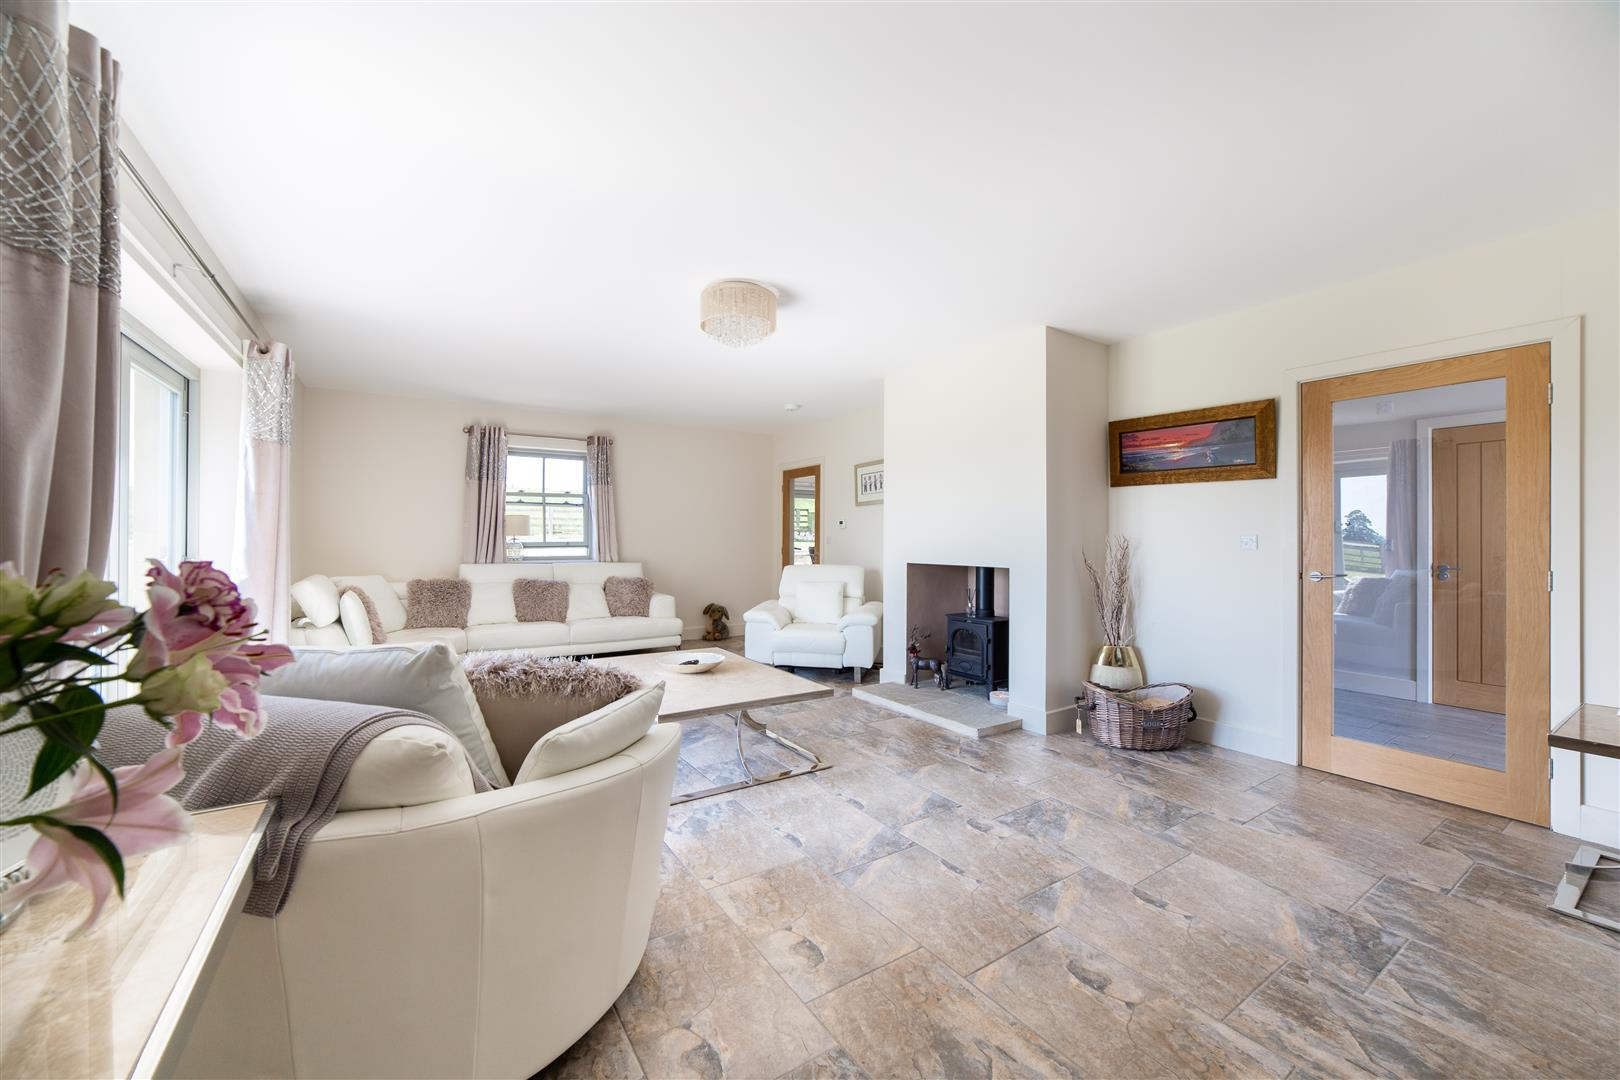 4 bed detached house for sale, Hexham  - Property Image 23